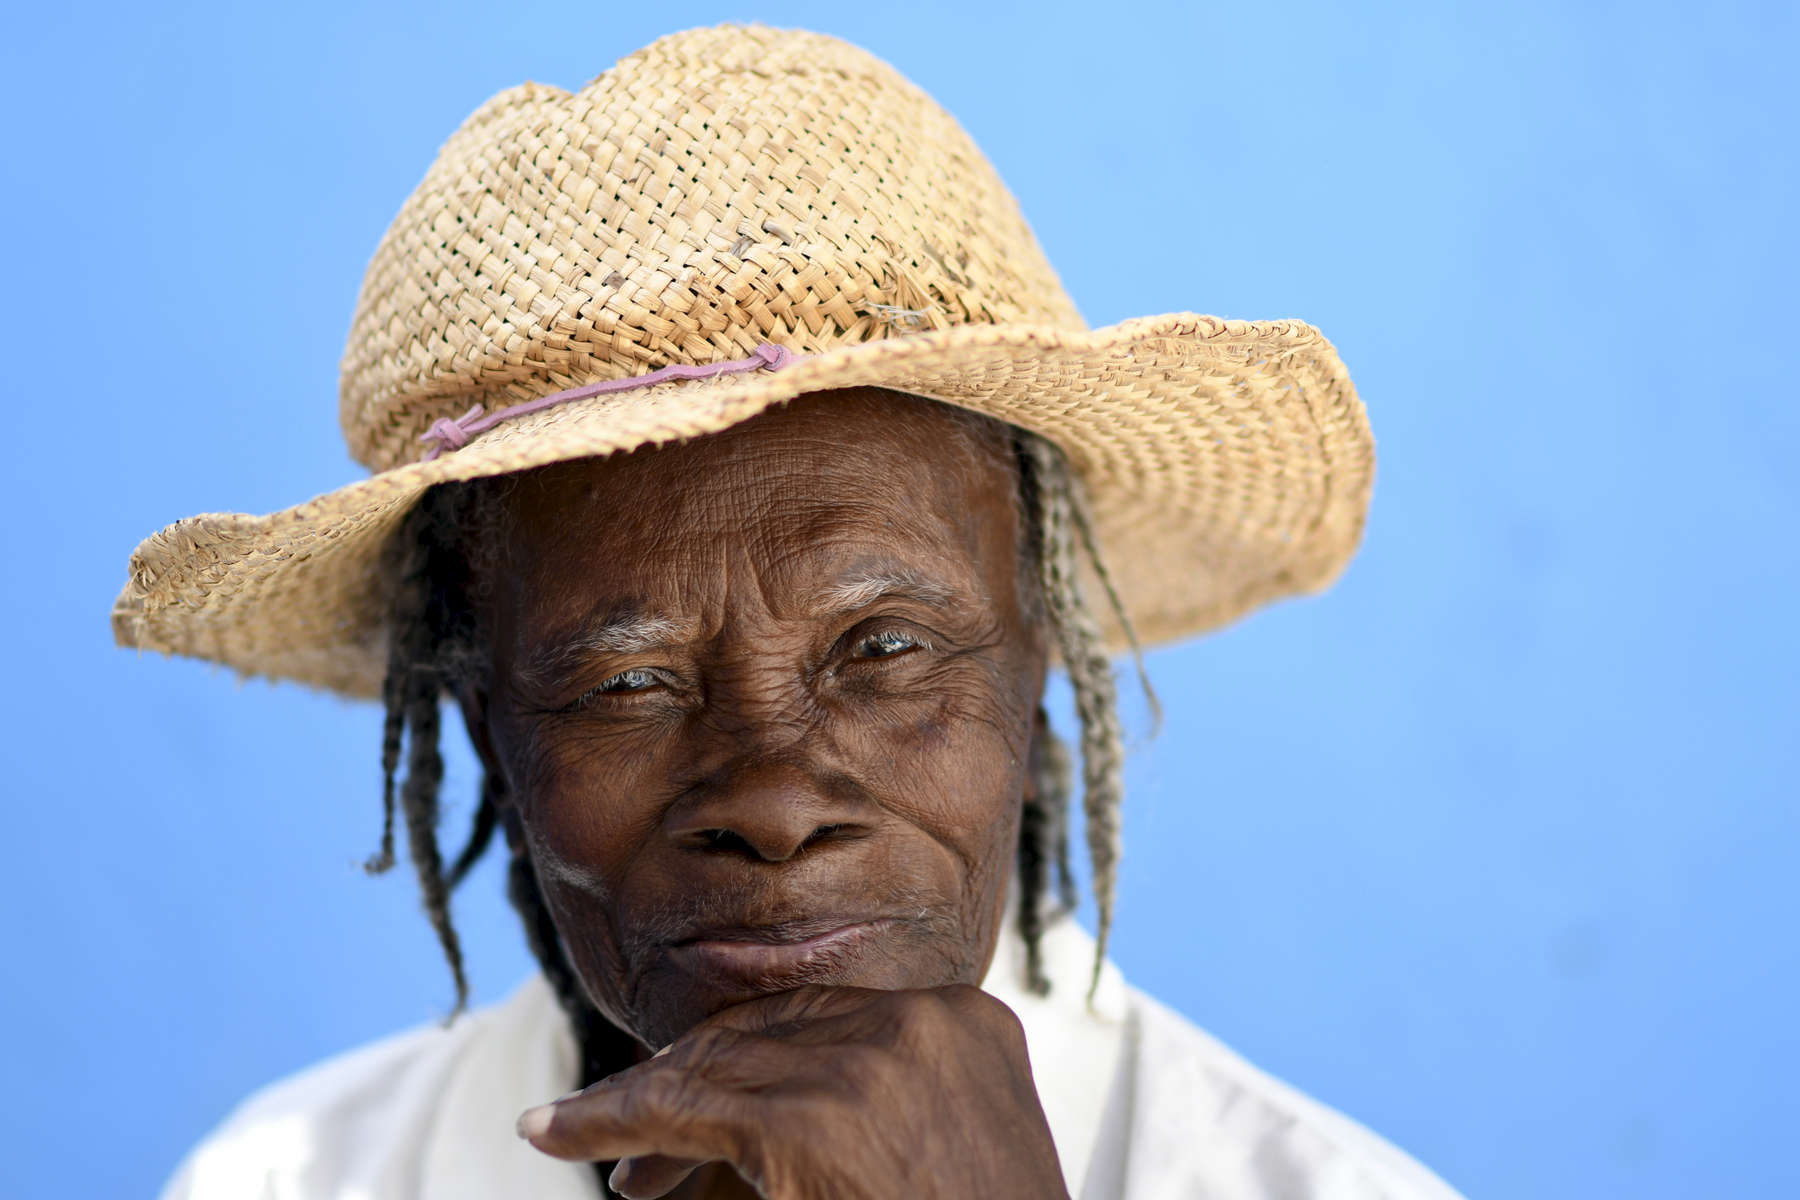 Maguilina Guerisson, 100, a former meat merchant born in Cuba, poses for a photo at a Forward in Health pop-up clinic at the Ecole Presbyteral de Dantan on Wednesday, November 2, 2016.